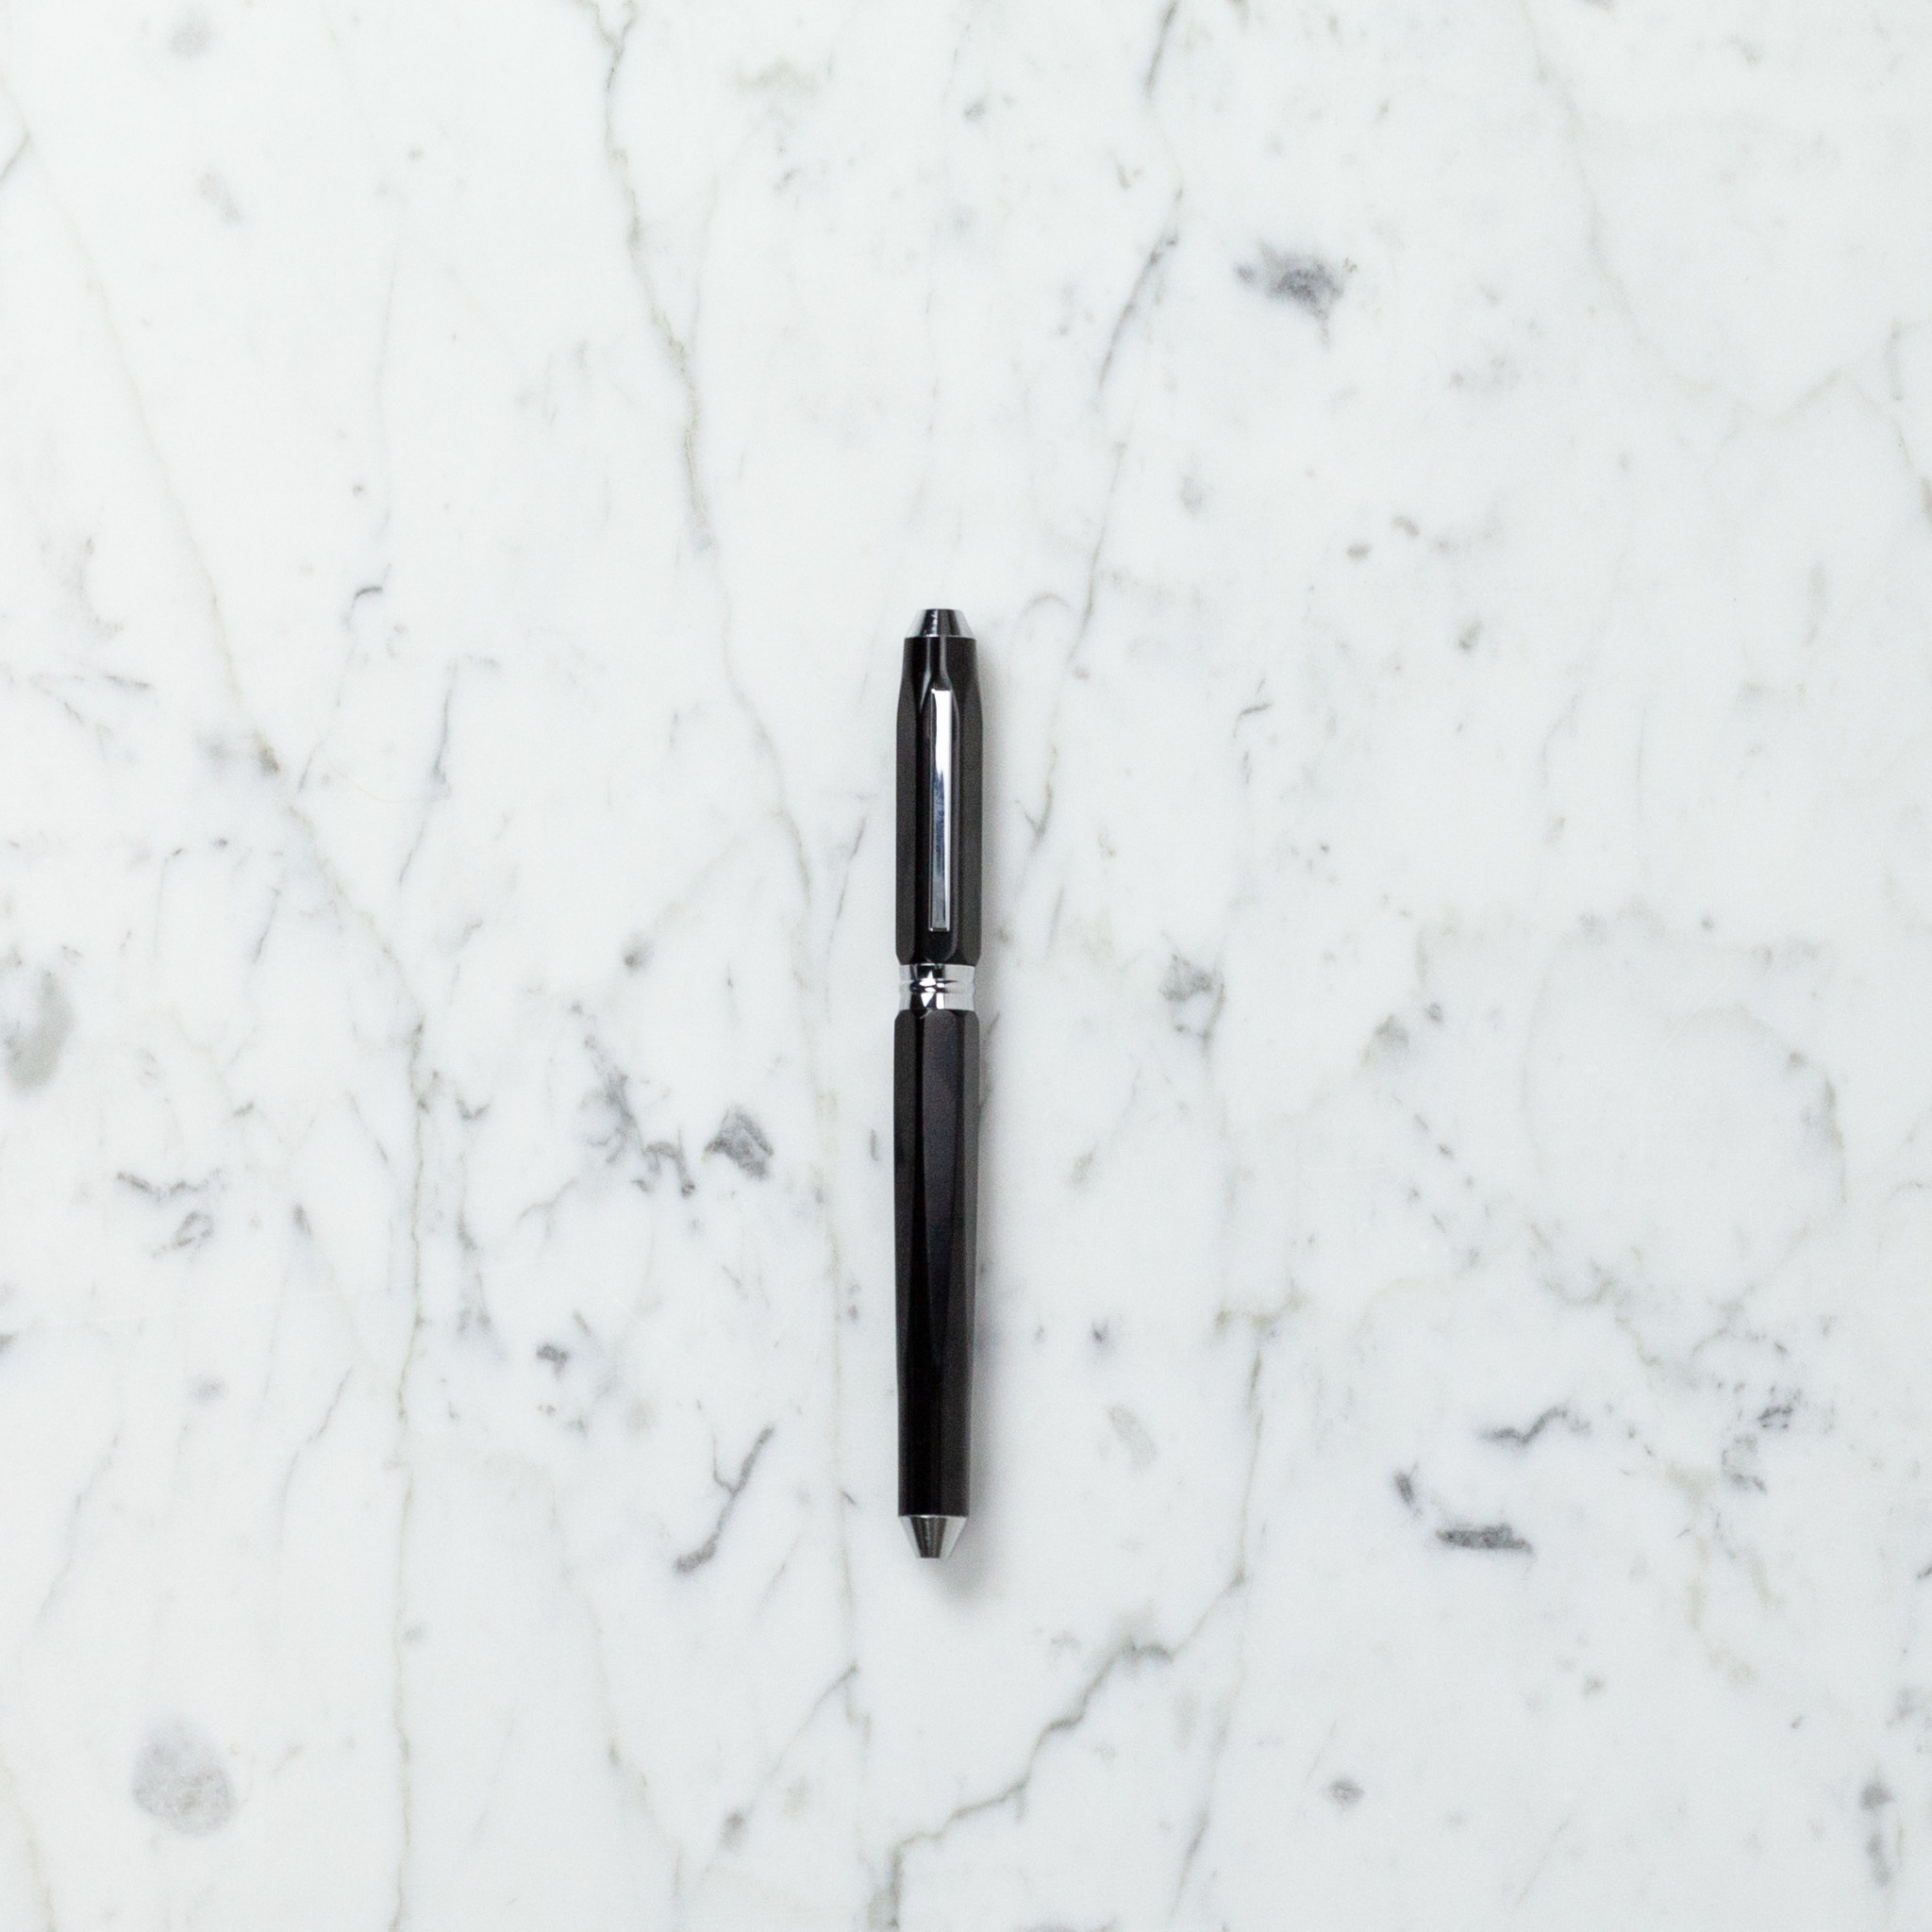 Ohto Dude Ceramic Rollerball Pen - Black - .5mm